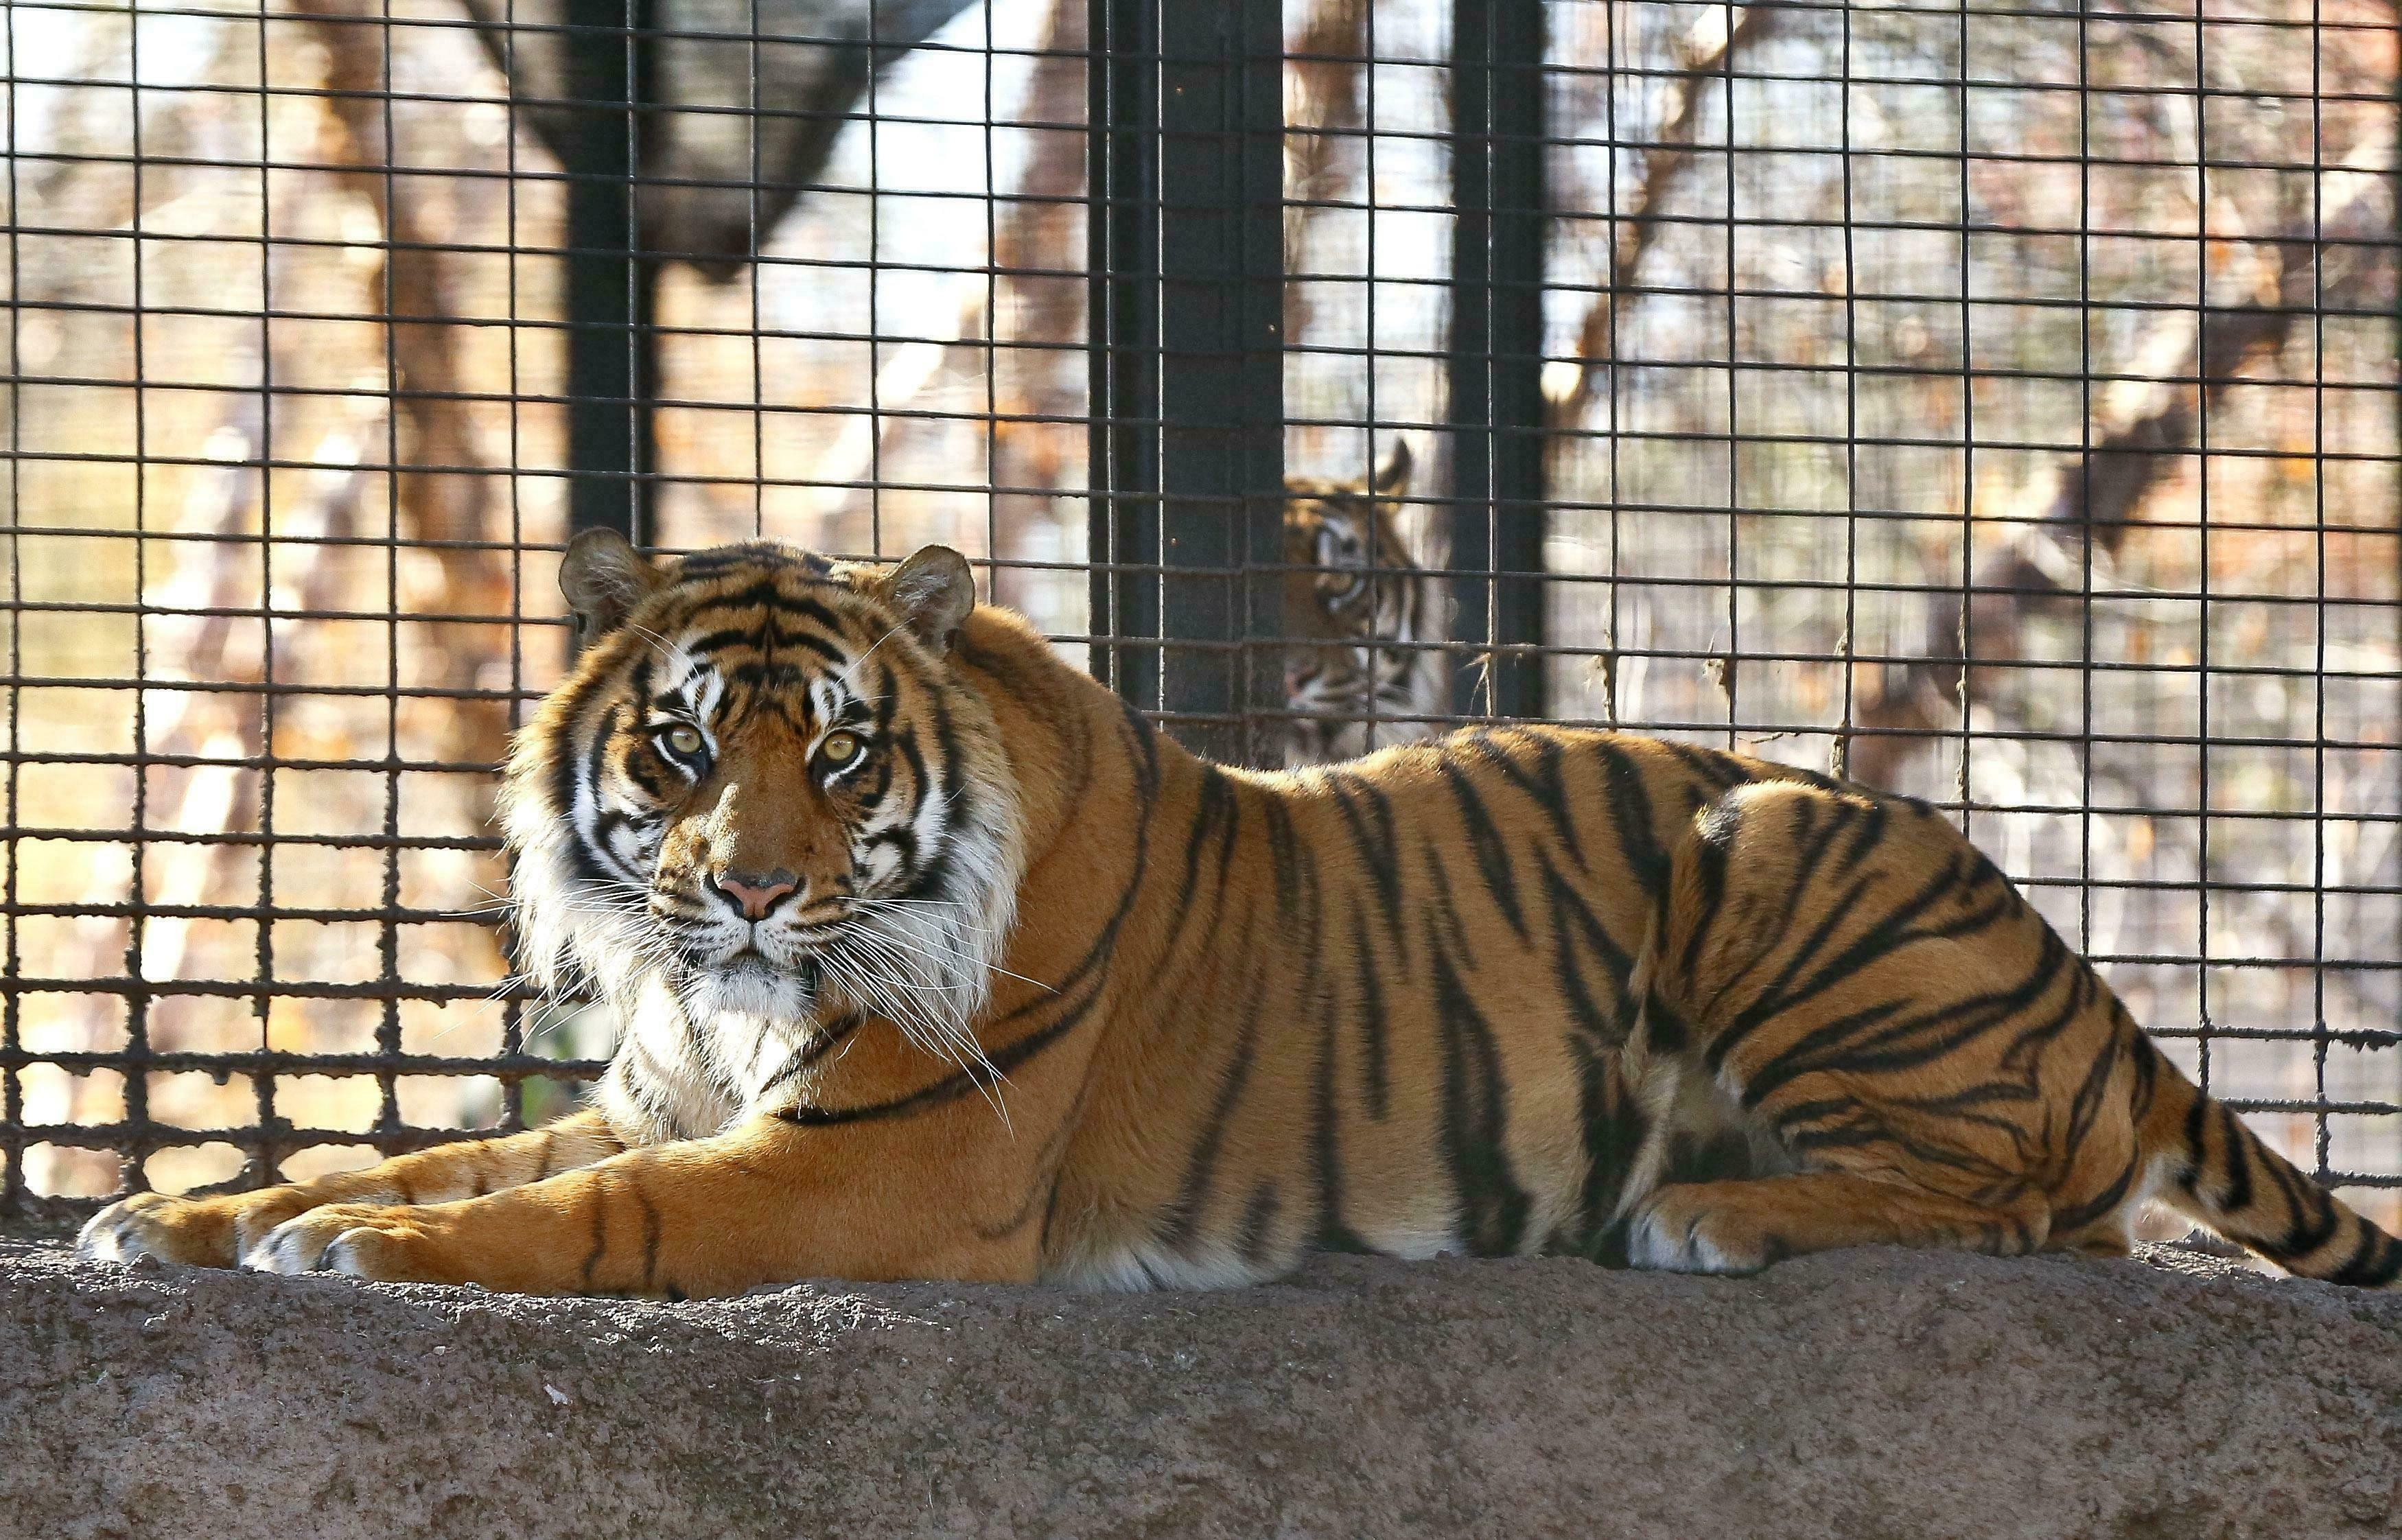 Bengal tiger attacks Jonathan Kraft, founder of Keepers of